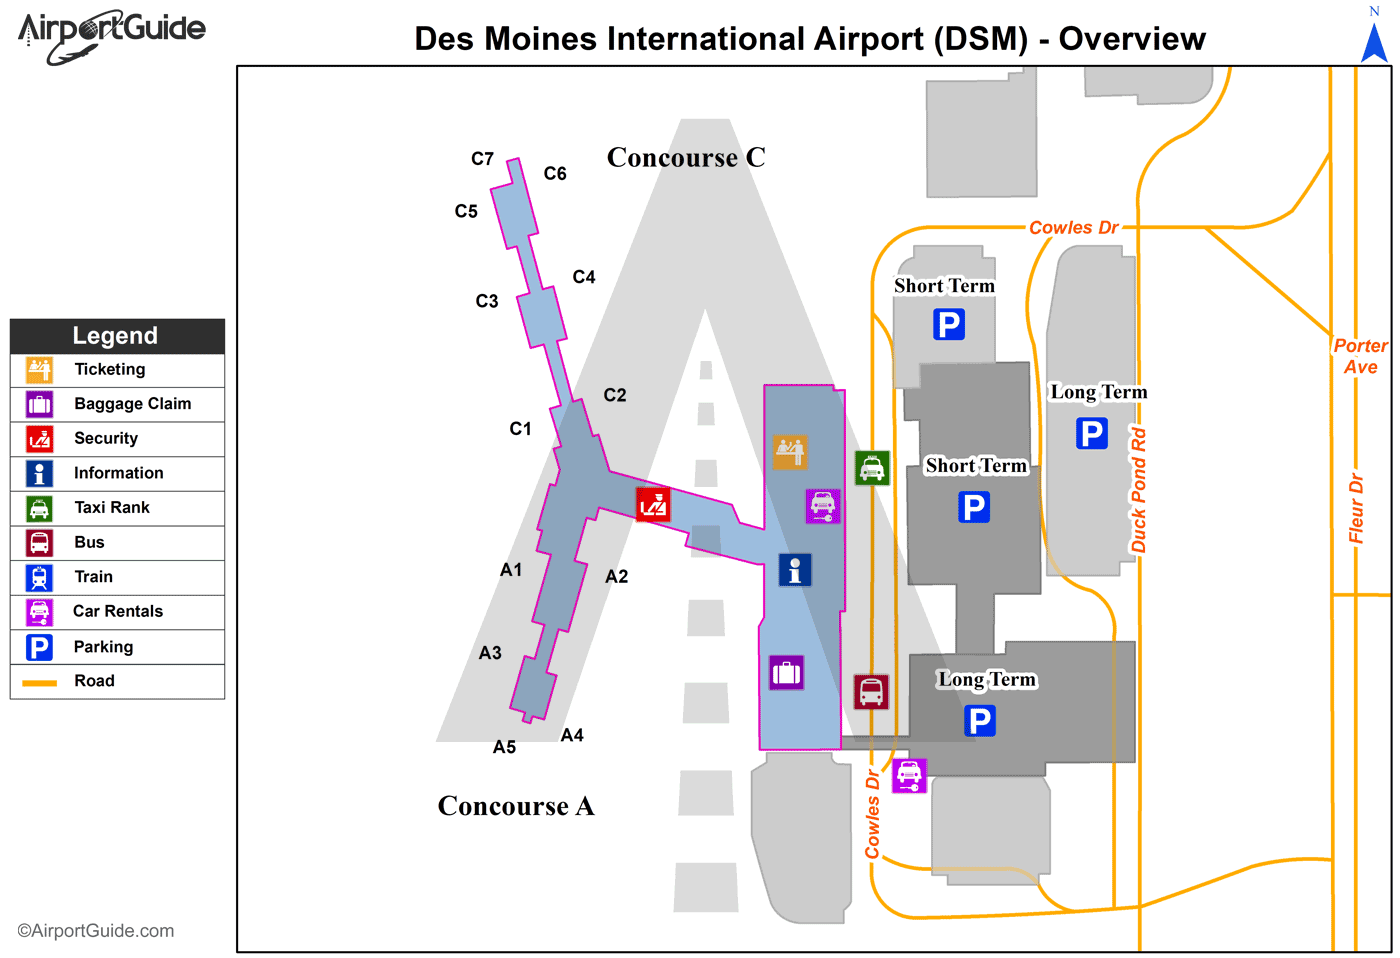 Des Moines - Des Moines International (DSM) Airport Terminal Map - Overview